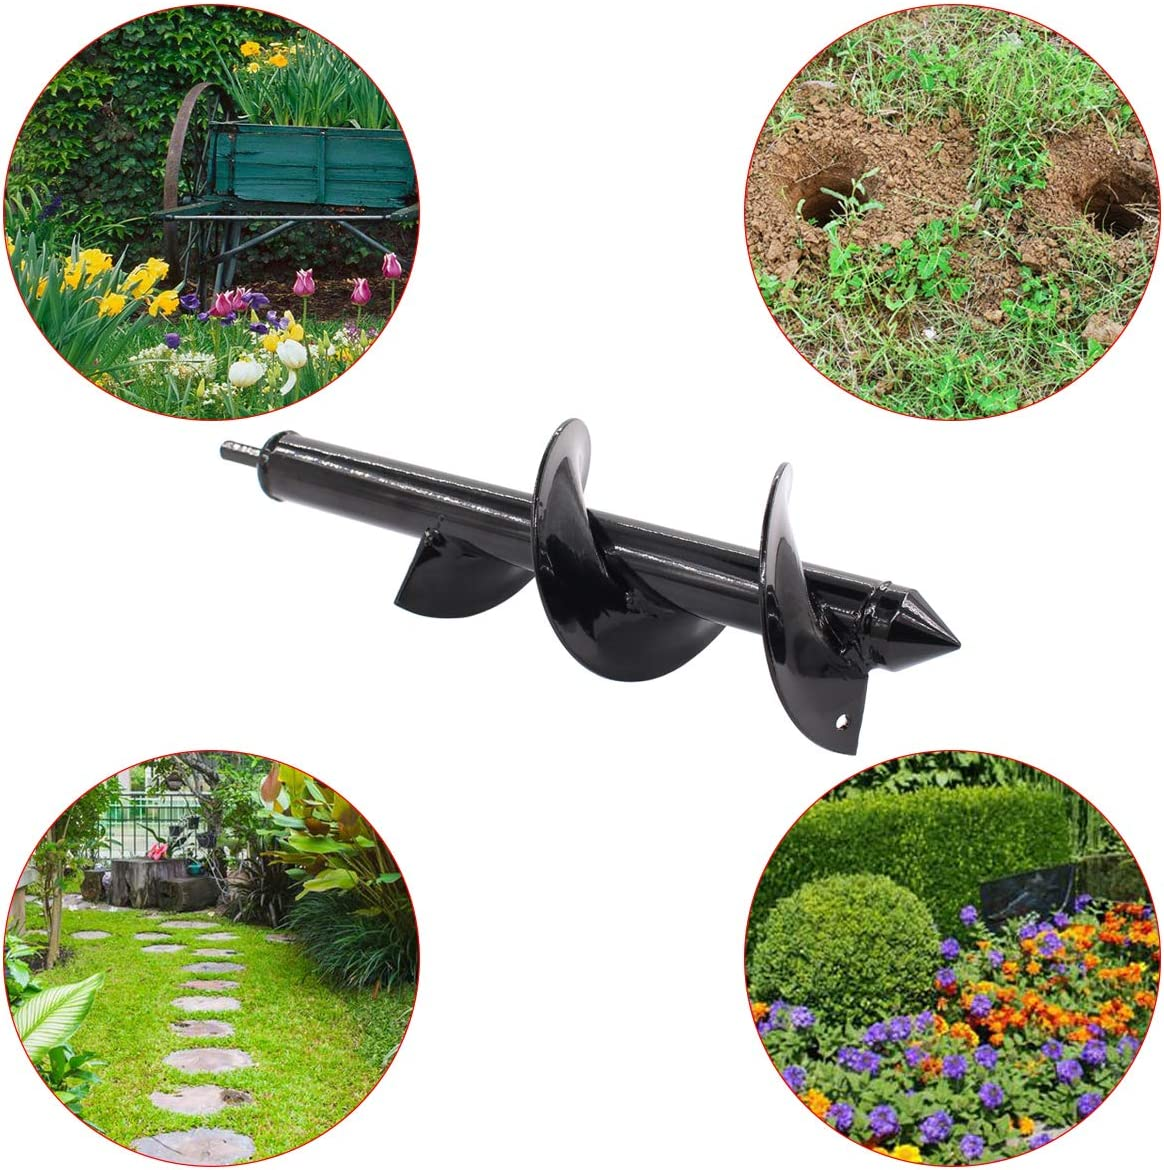 ApplianPar Auger Drill Bit for 3//8 Inch Hex Drive Drill Garden Plant Flower Rapid Planter and Bedding Plant Auger Fence Post Umbrella Hole Digger 3 x 12 Inch